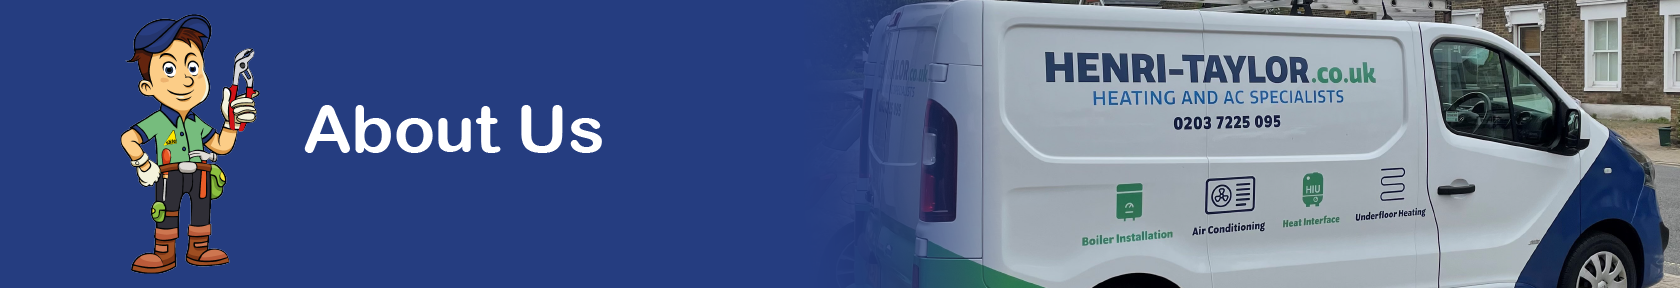 Henri-Taylor Heating Services Bexley